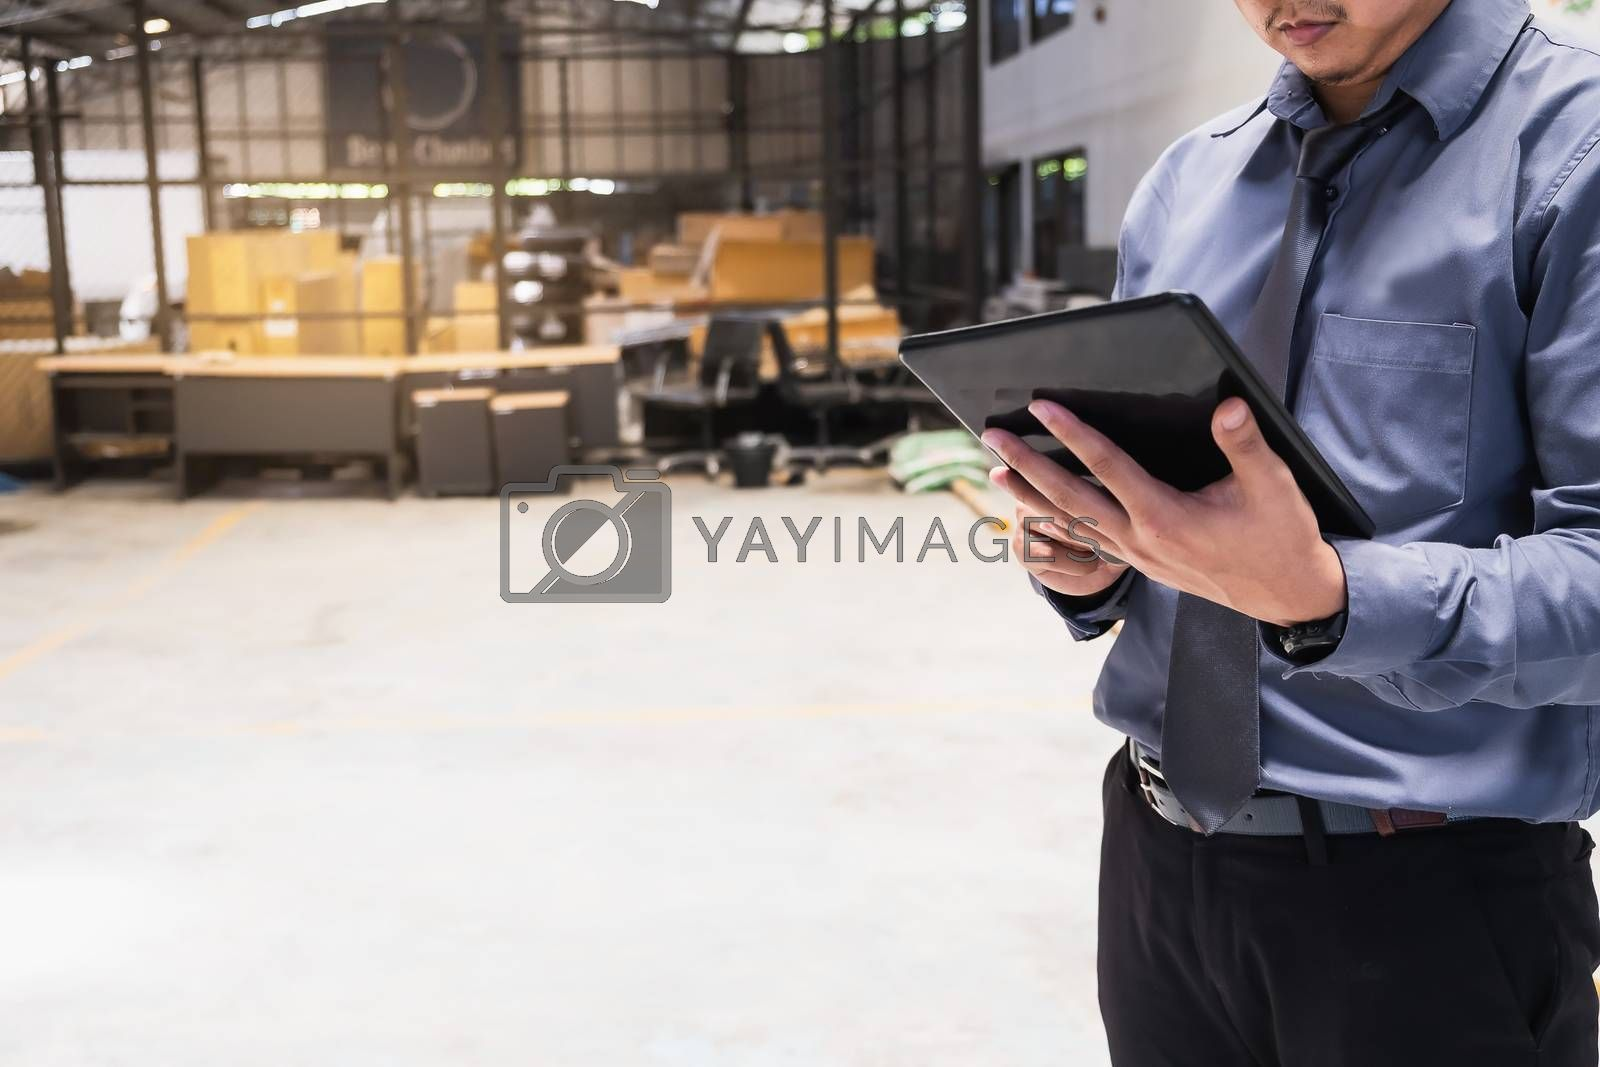 Asian business man writing clipboard on blurred background.metap by oatzpenzstudio